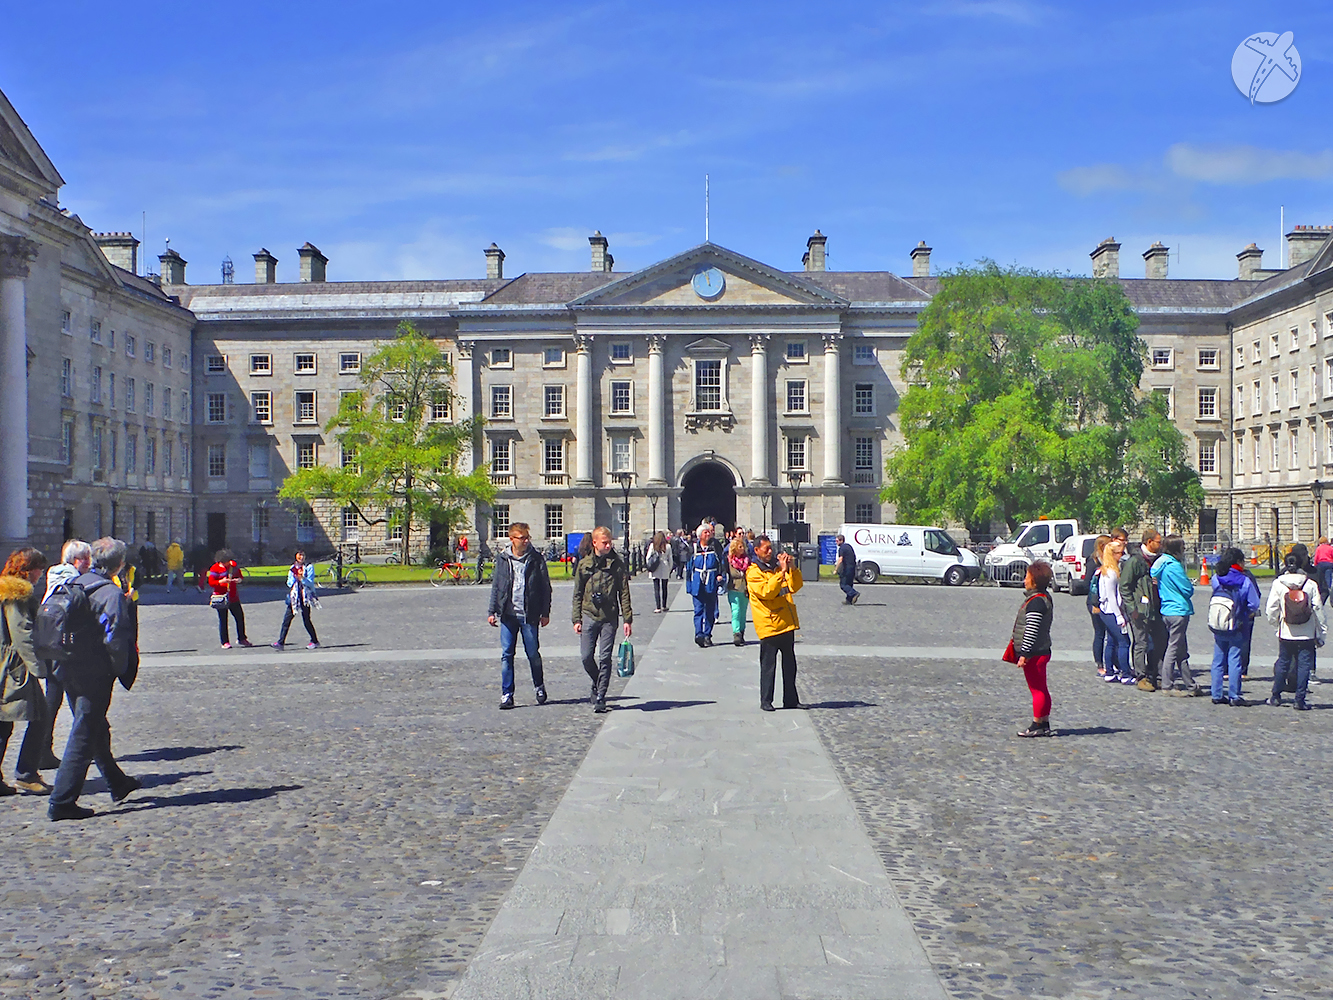 Trinity College Old Library (2)